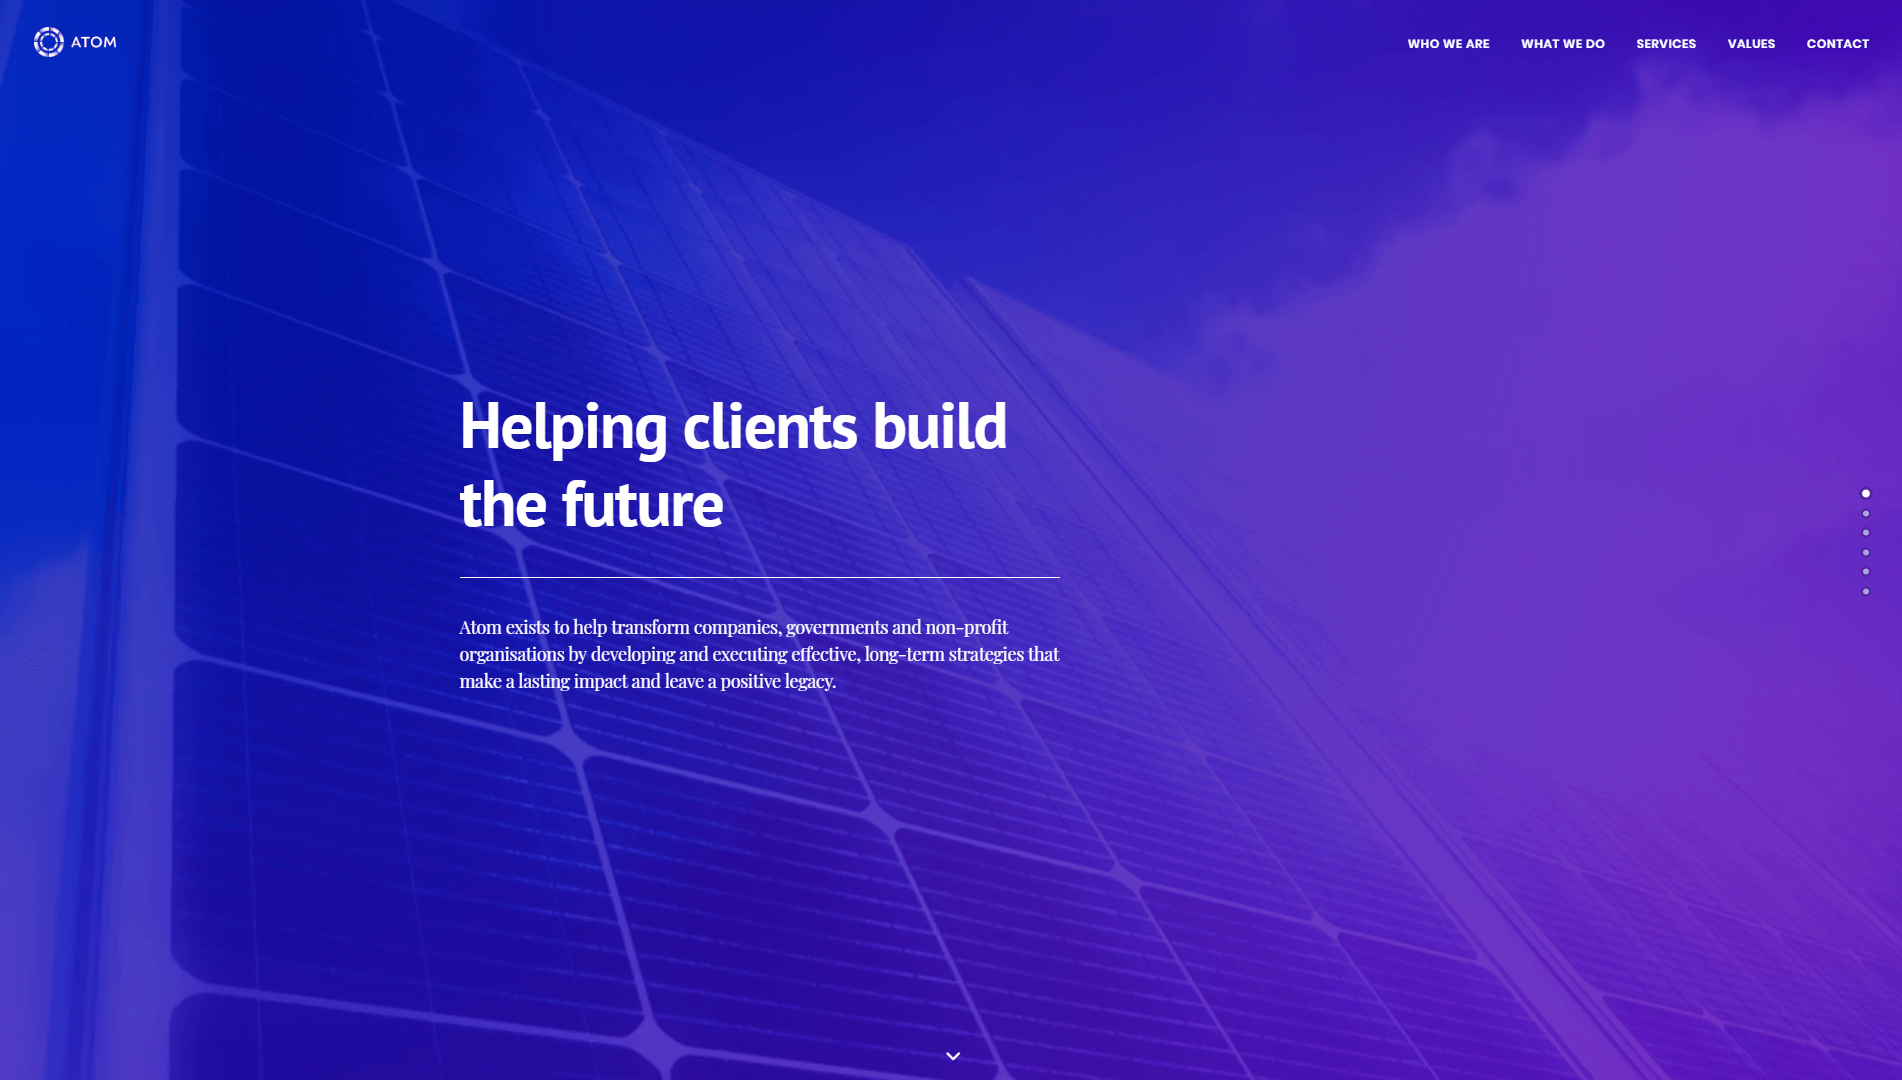 The Atom Consulting homepage.